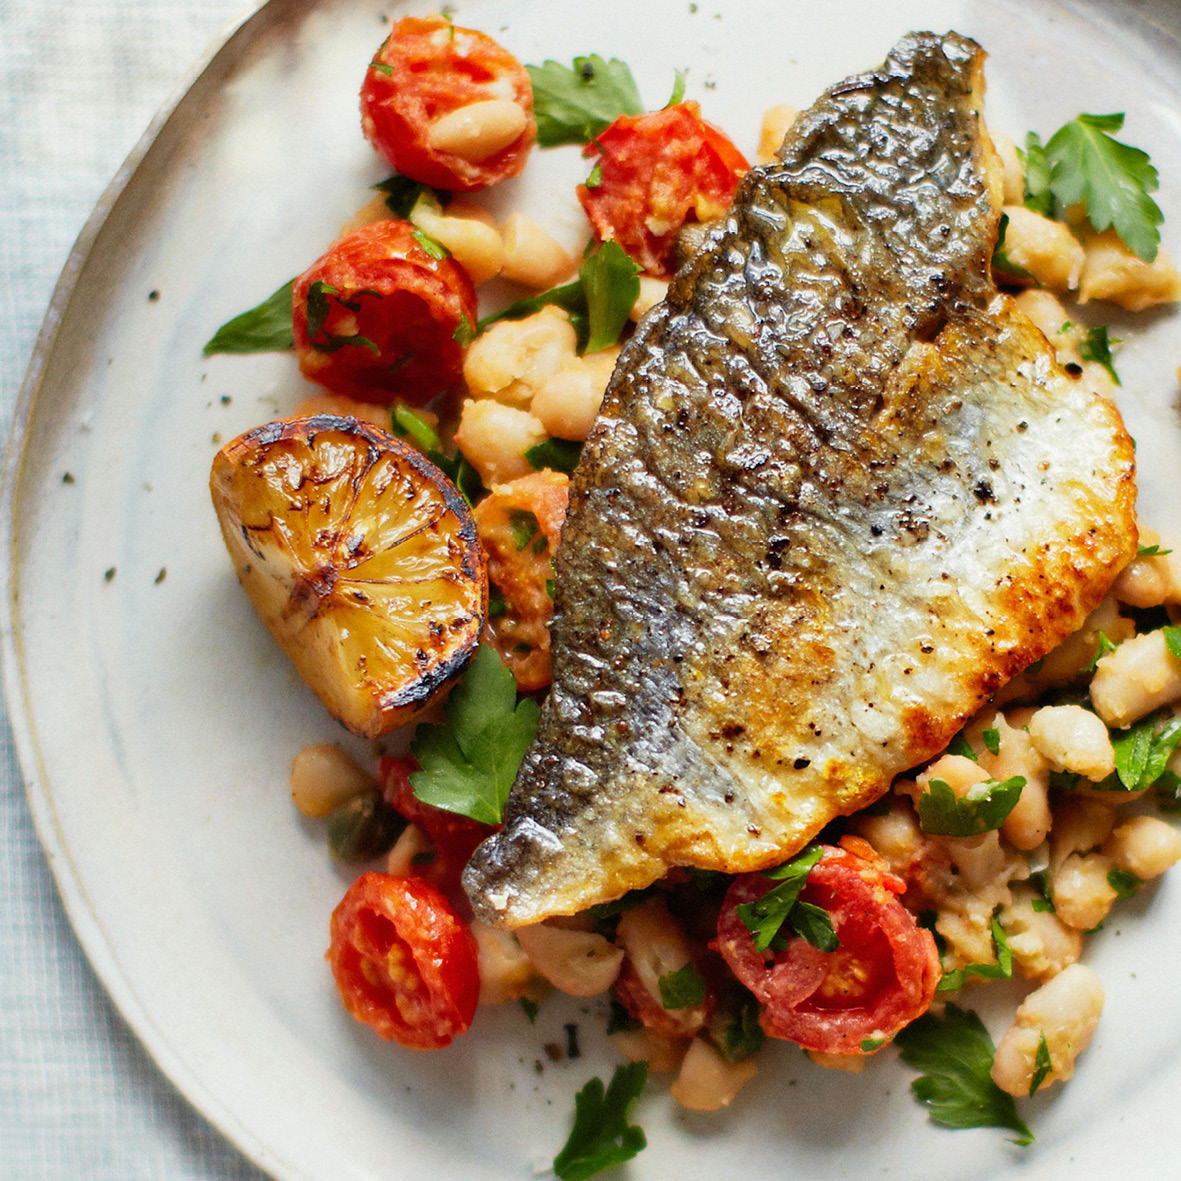 Bream_with_cannellini_beans_and_tomatoes.jpg